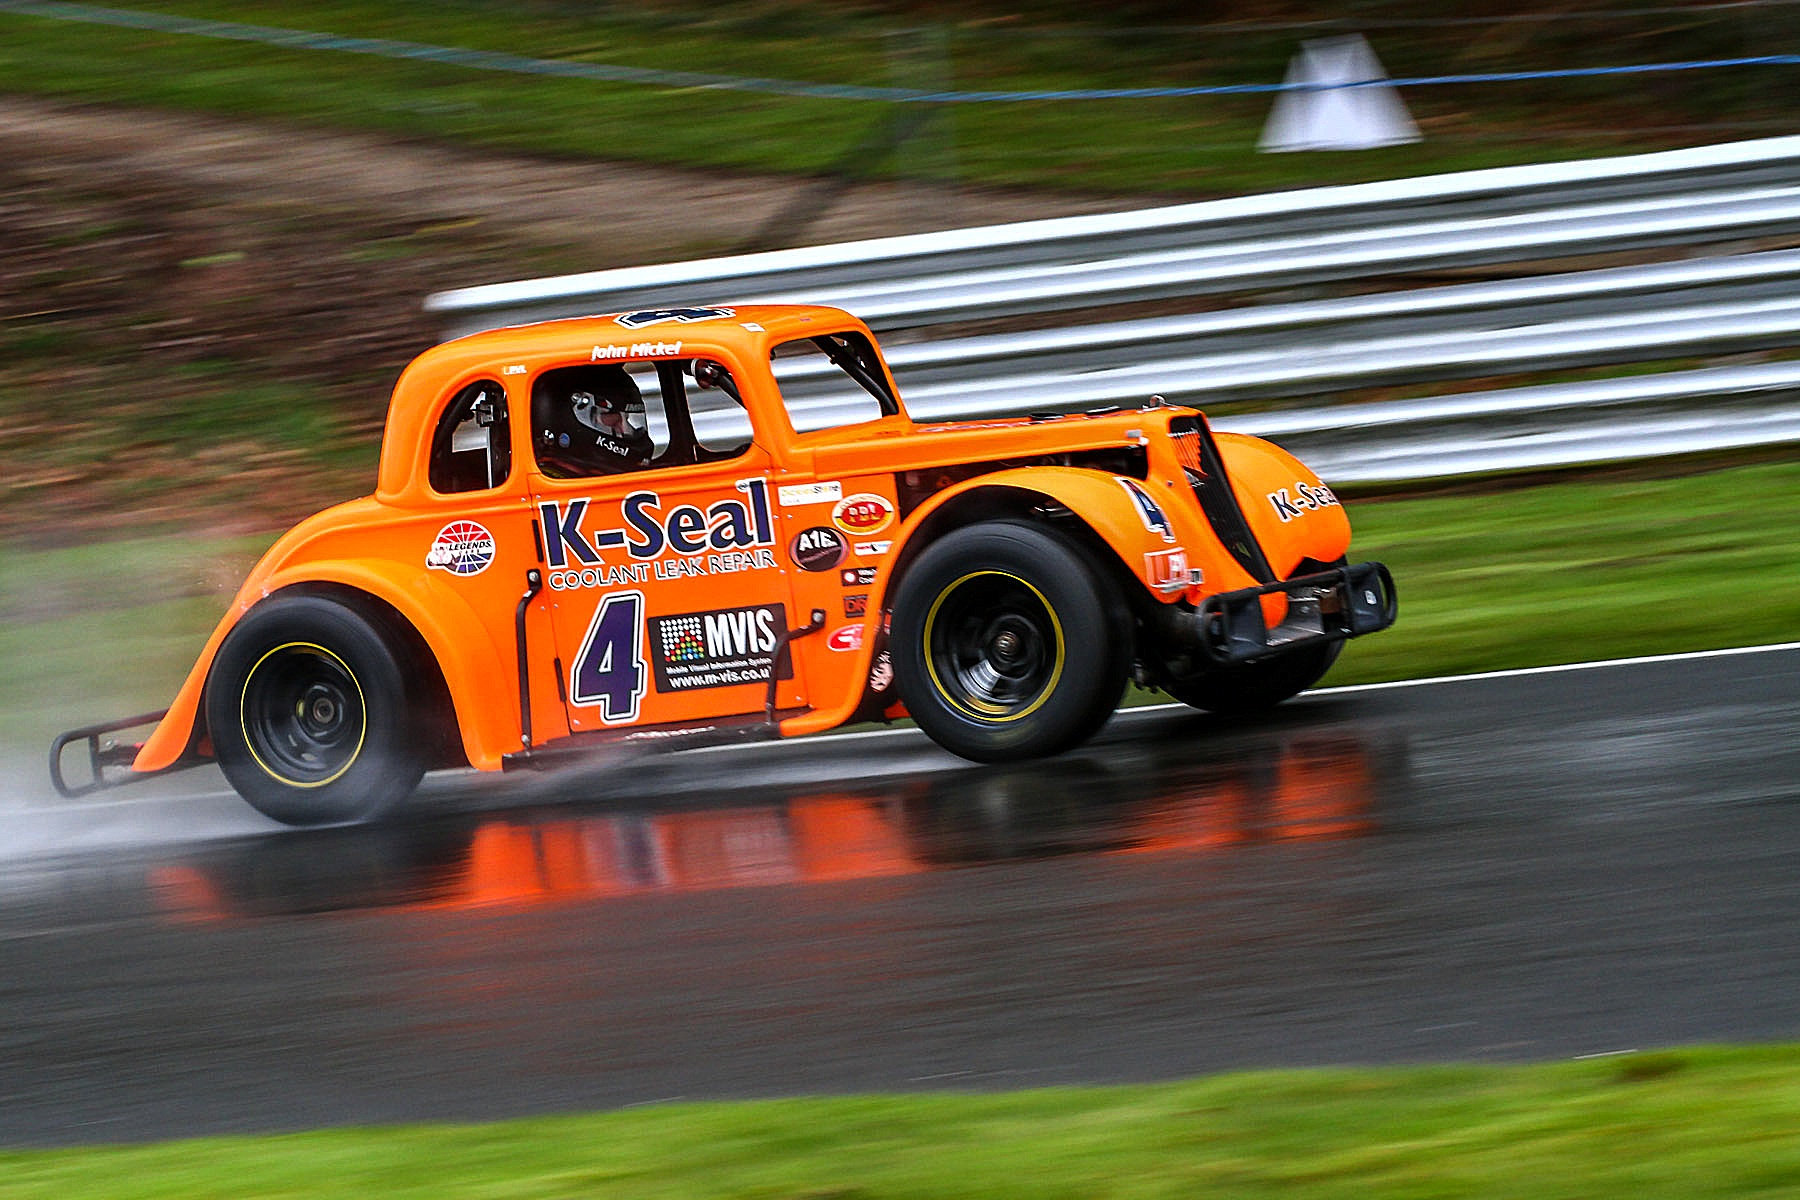 2015 - Round 1 - Oulton Park Gallery Image 48